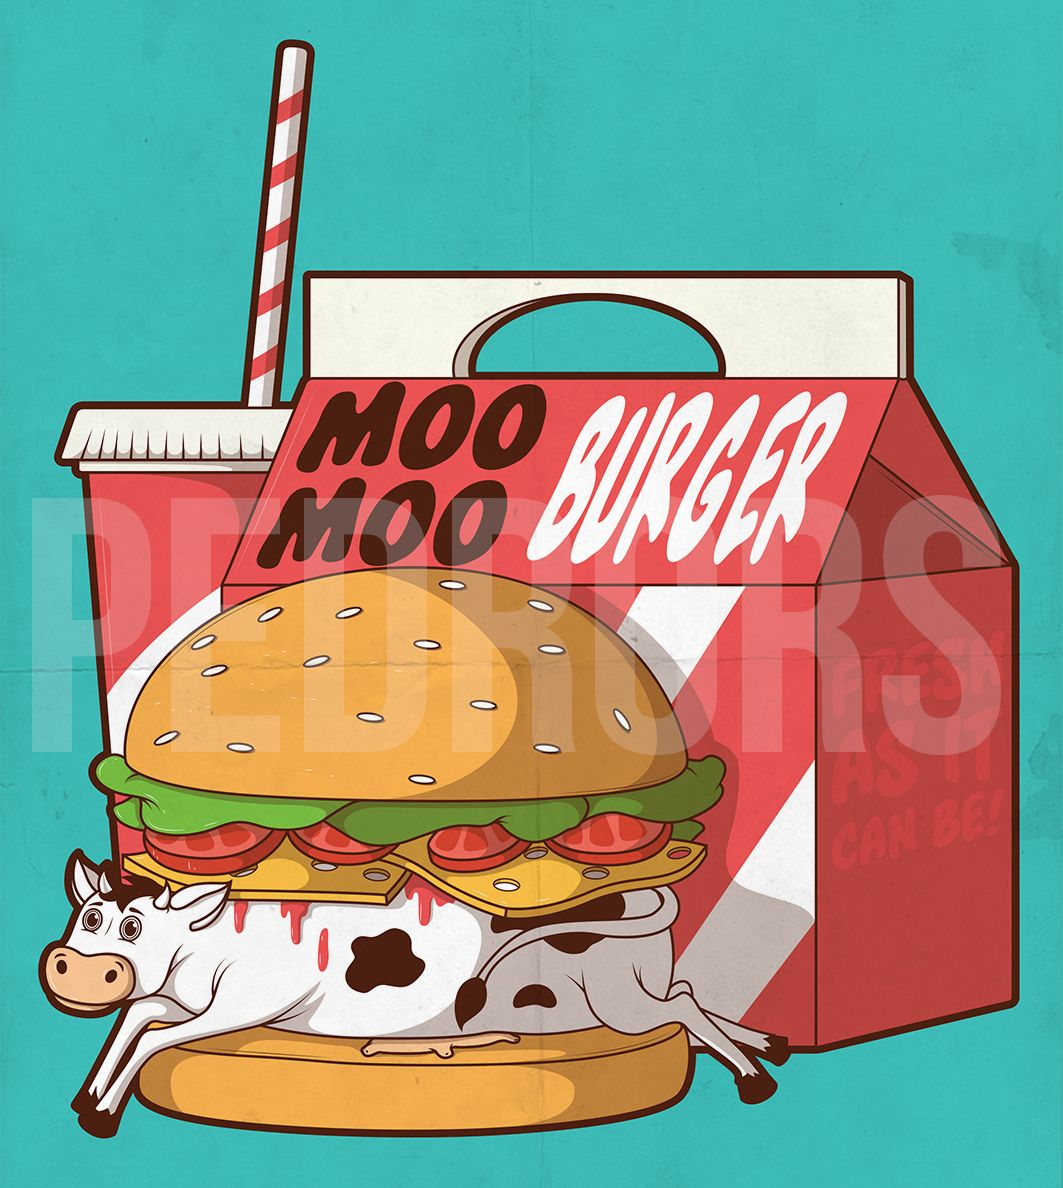 https://www.designbyhumans.com/shop/t-shirt/men/moo-moo-burger/663814/